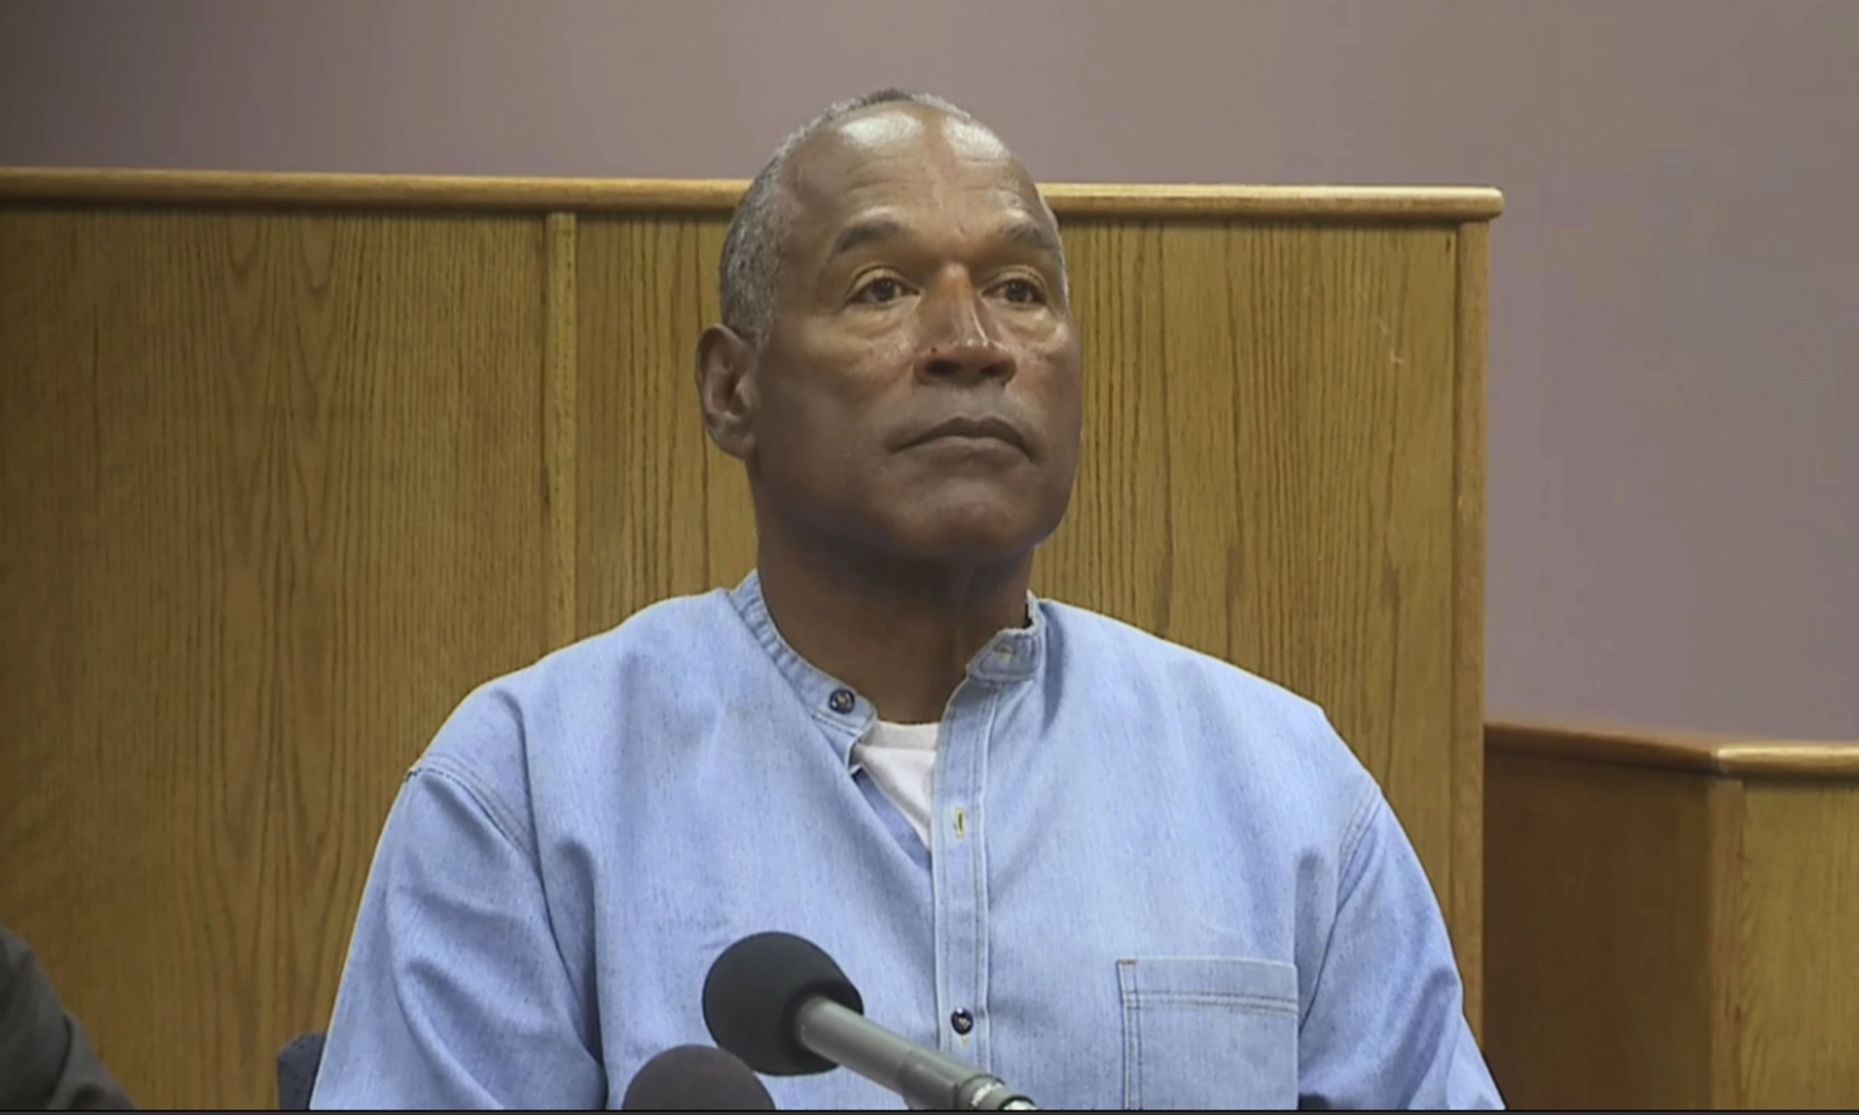 'Juice' will be loose: OJ Simpson granted parole in robbery